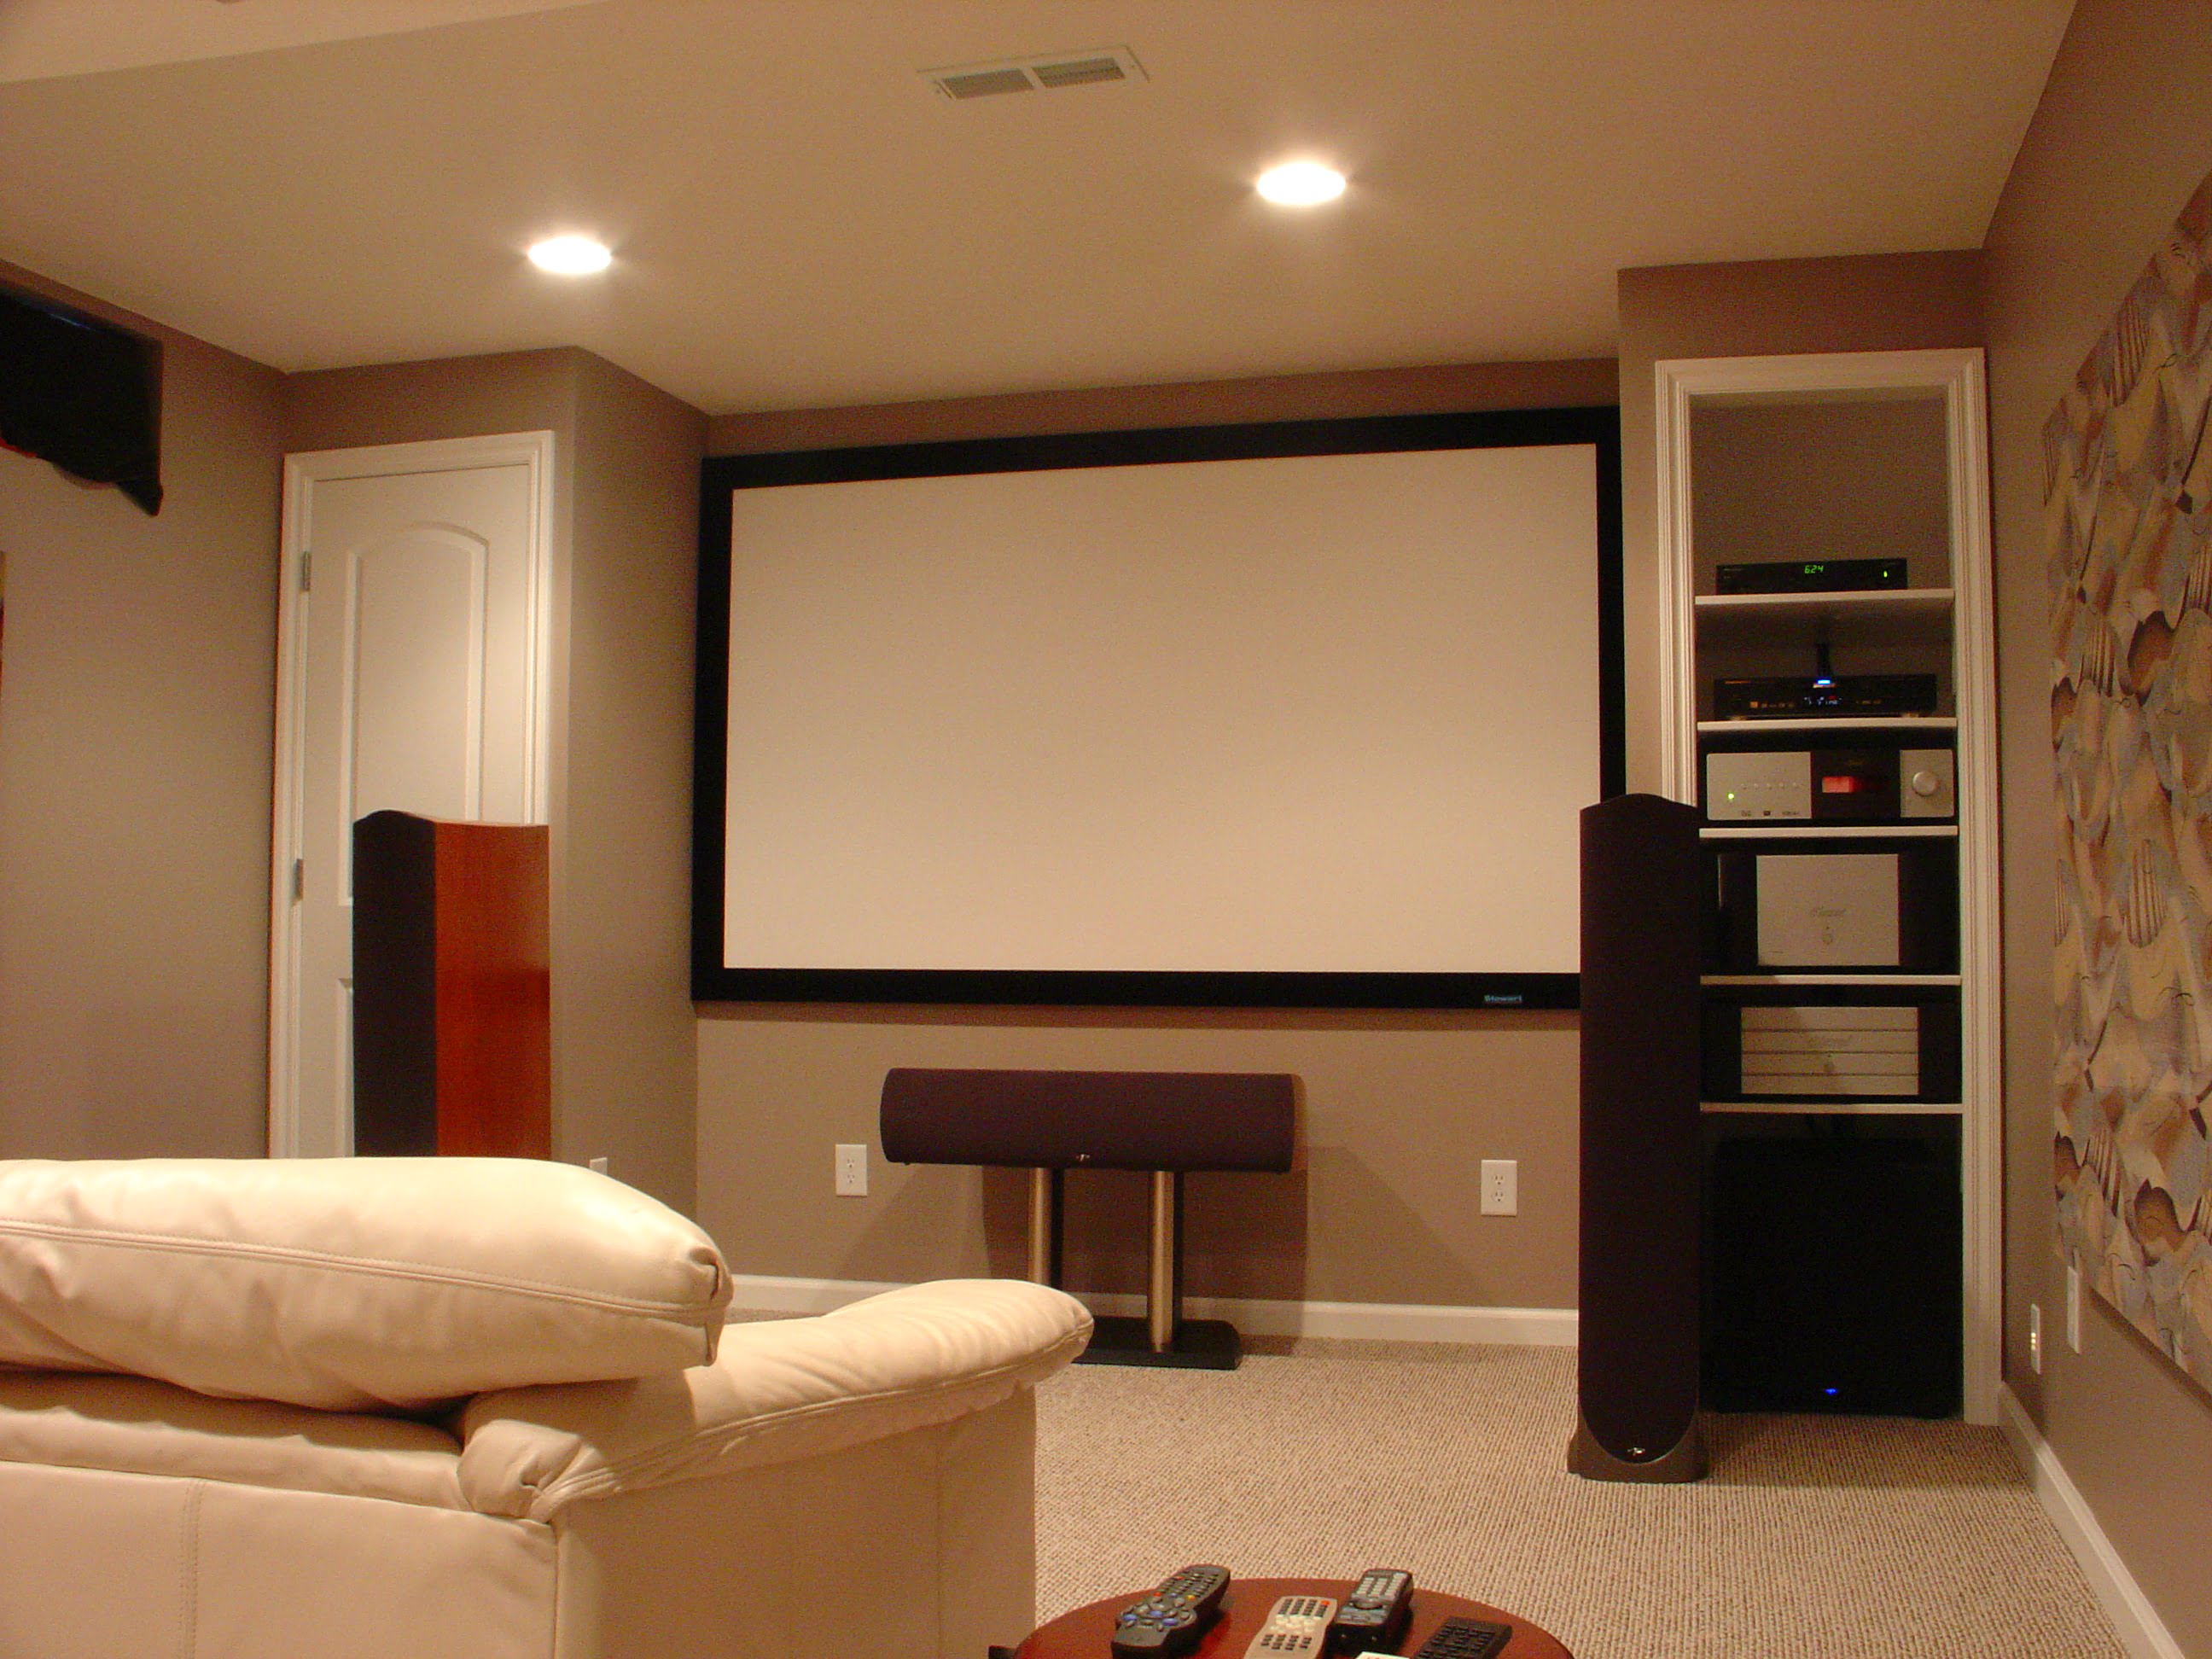 Finished Basement Ideas | 2592 x 1944 · 2238 kB · jpeg